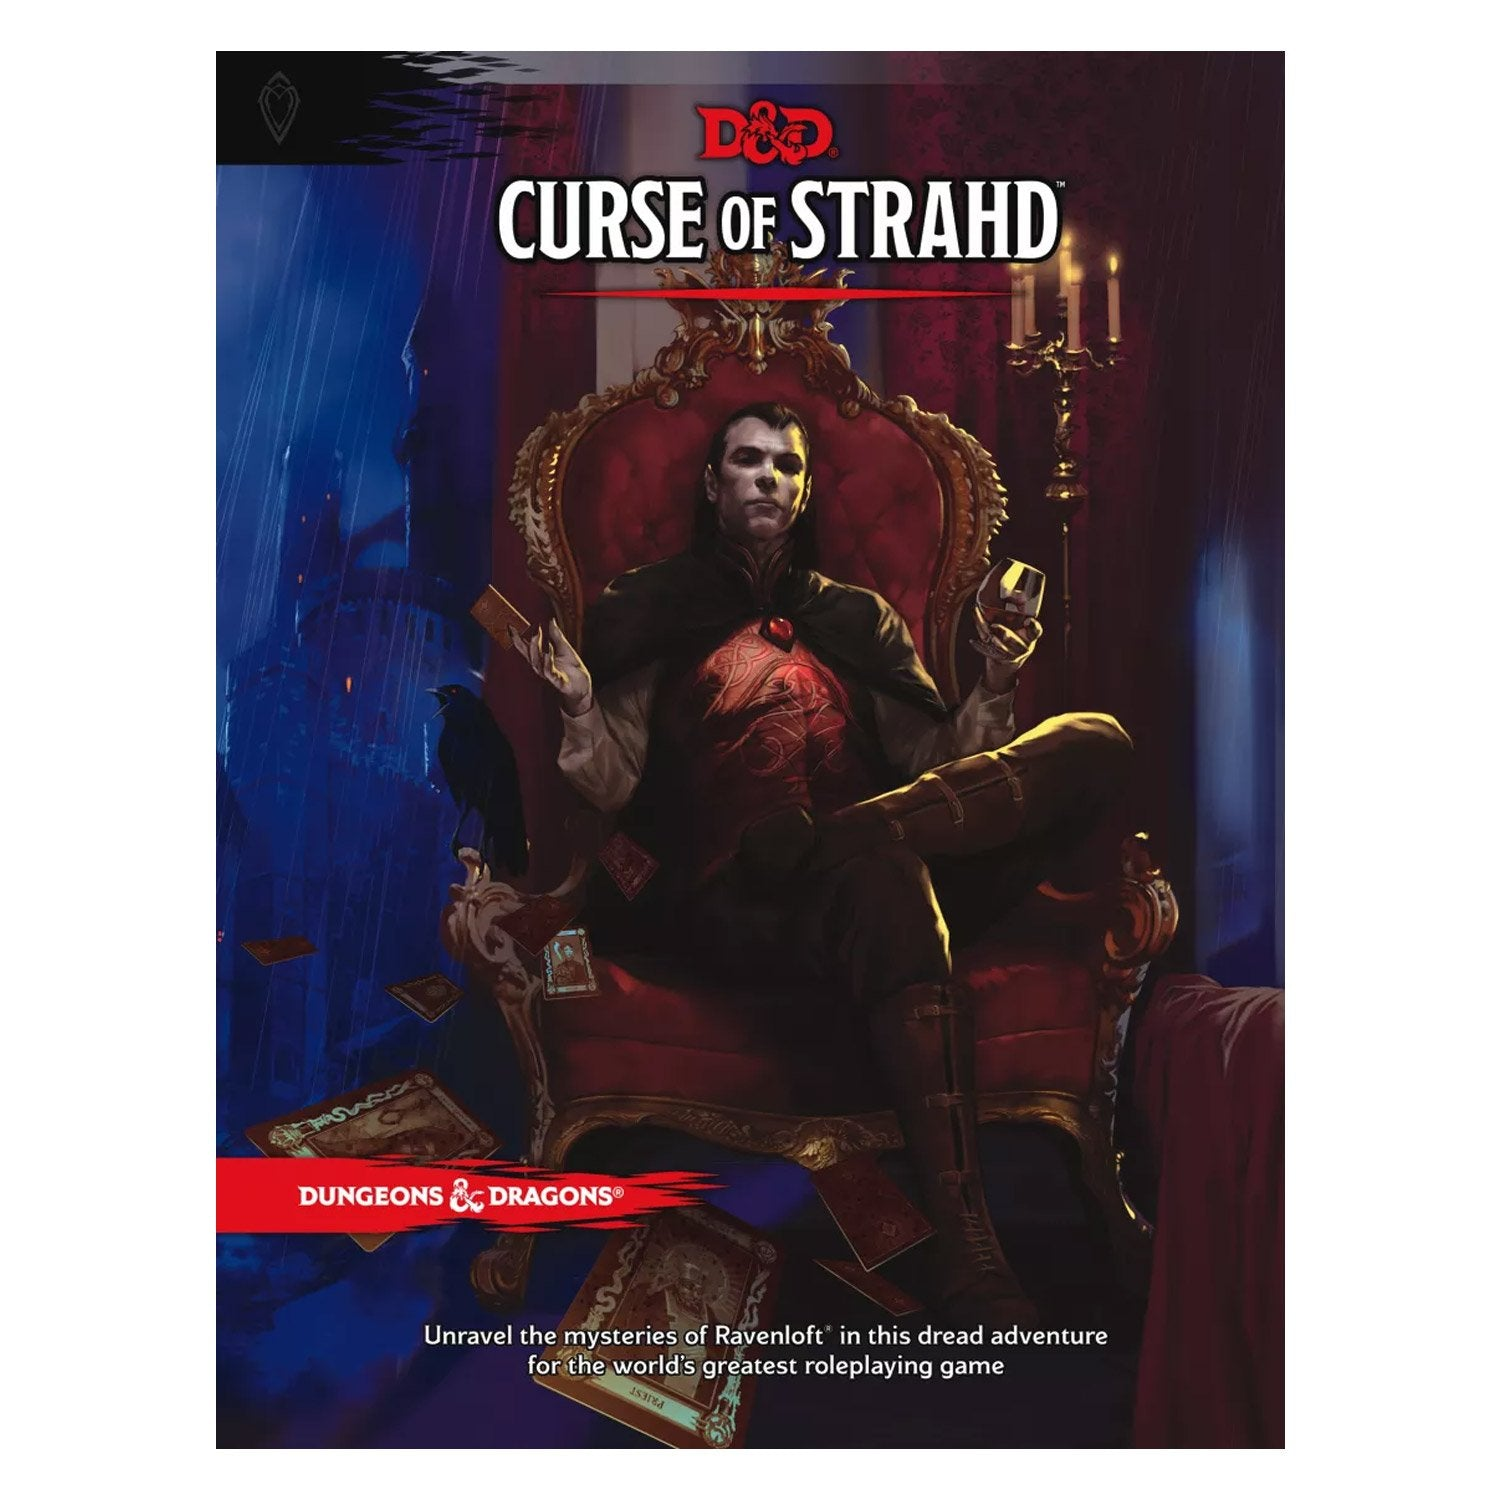 Dungeons & Dragons Curse of Strahd - Imaginary Adventures